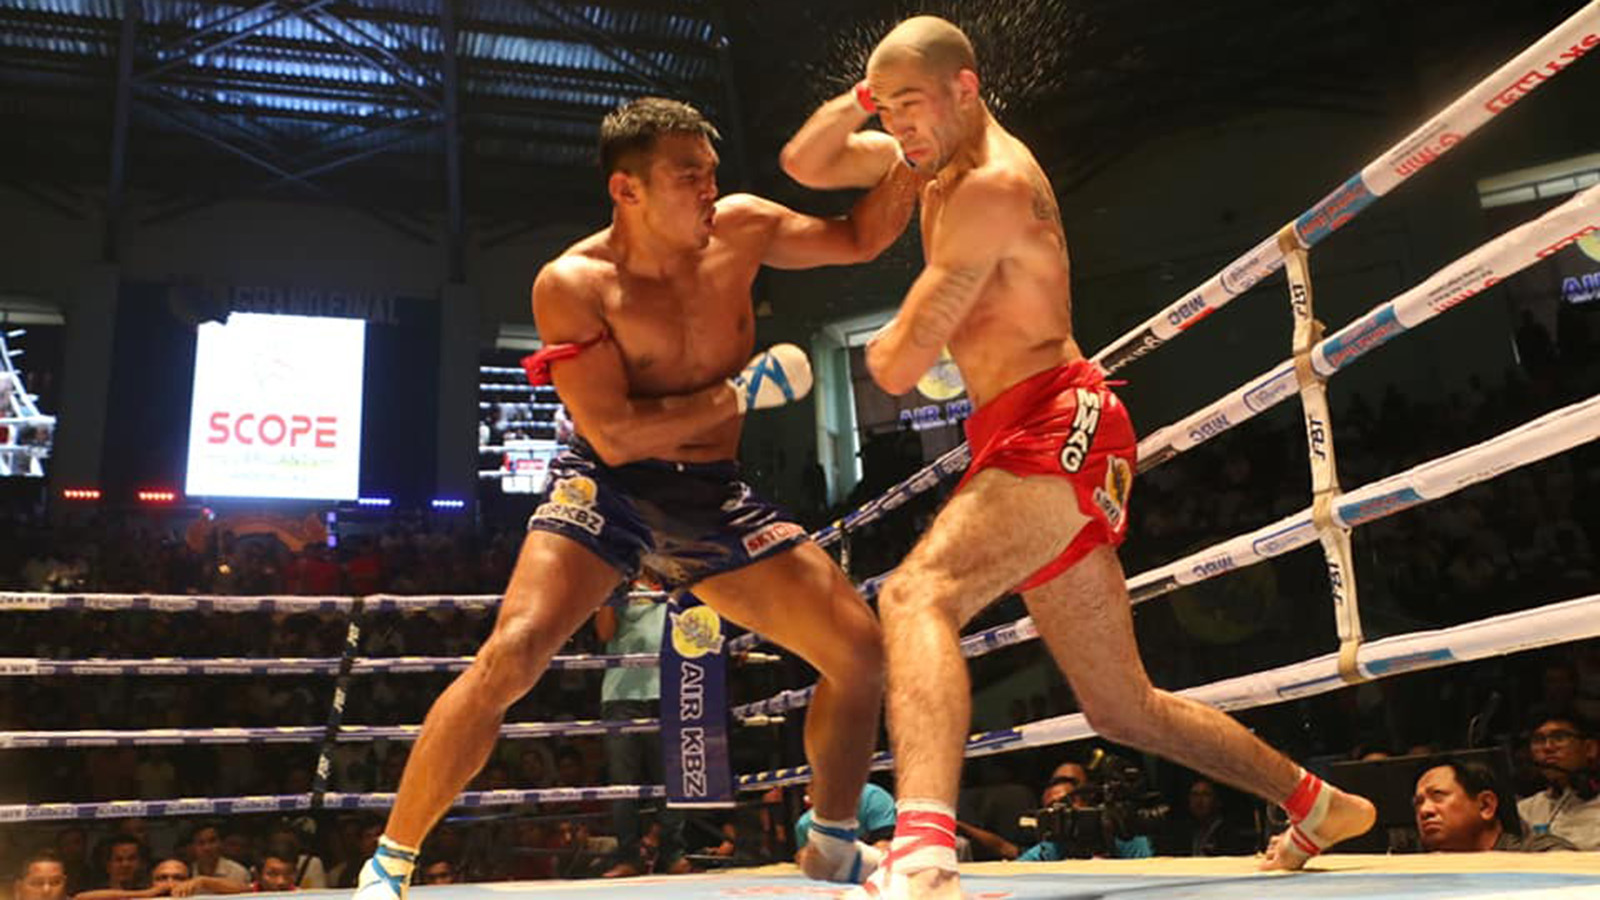 Tun Tun Min (blue) lands a punch on Dave Leduc (red) in Air KBZ Grand Final Championship at the Thein Phyu Stadium in Yangon yesterday.Photo:MLWC